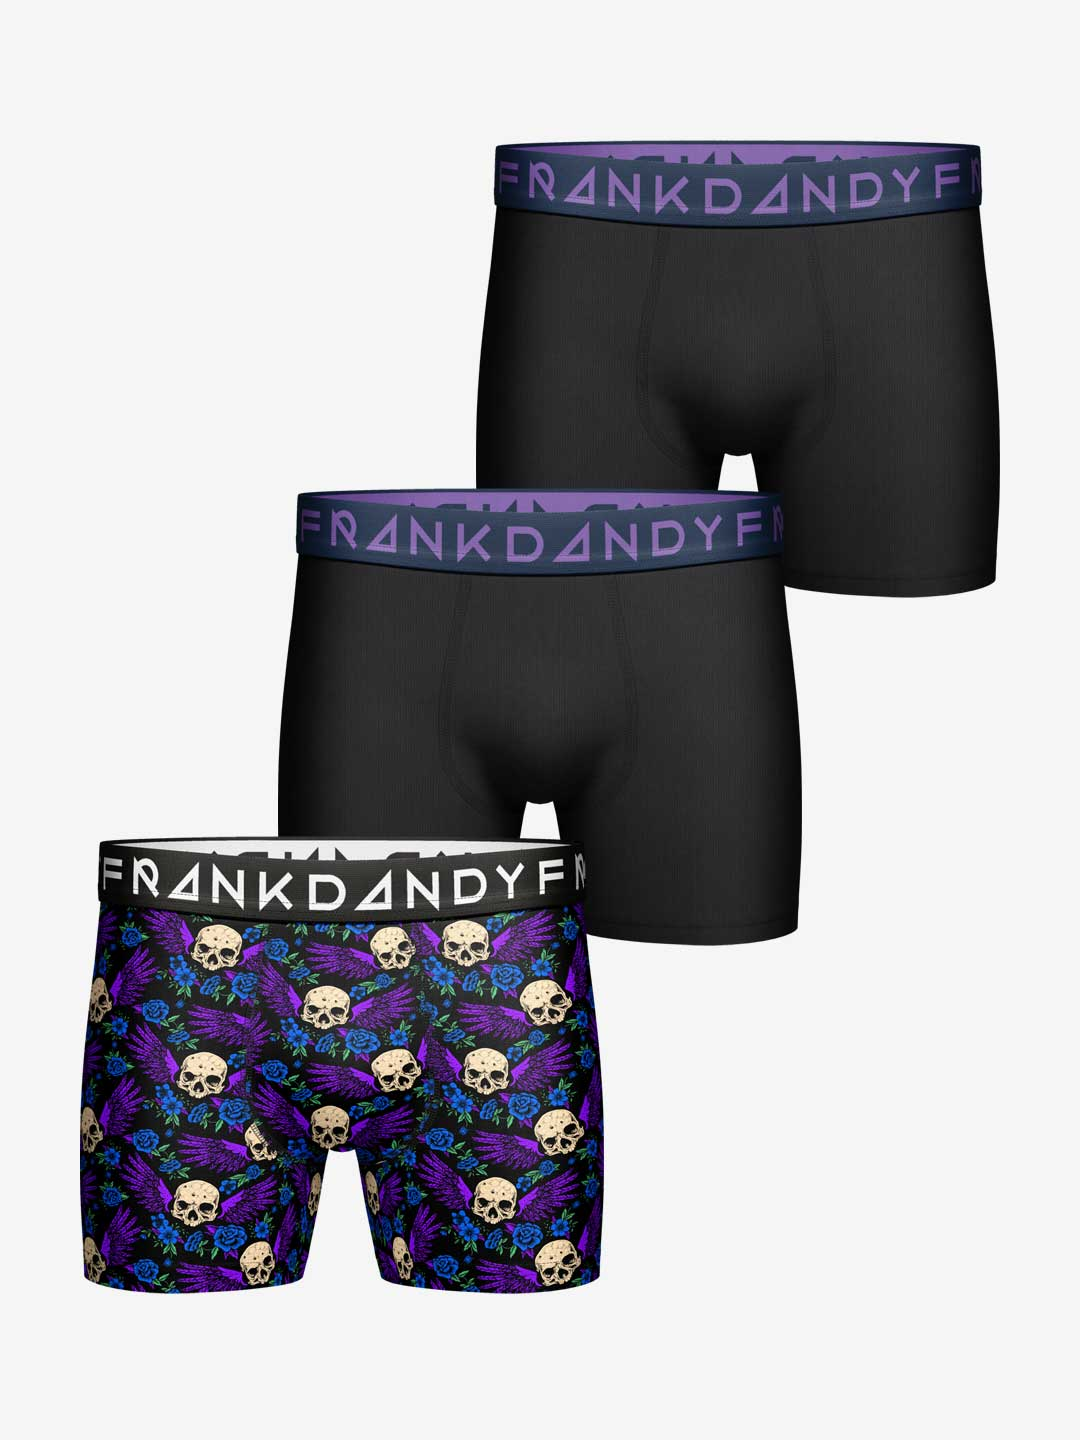 Frank Dandy 3-Pack Sculls & Wings Boxer